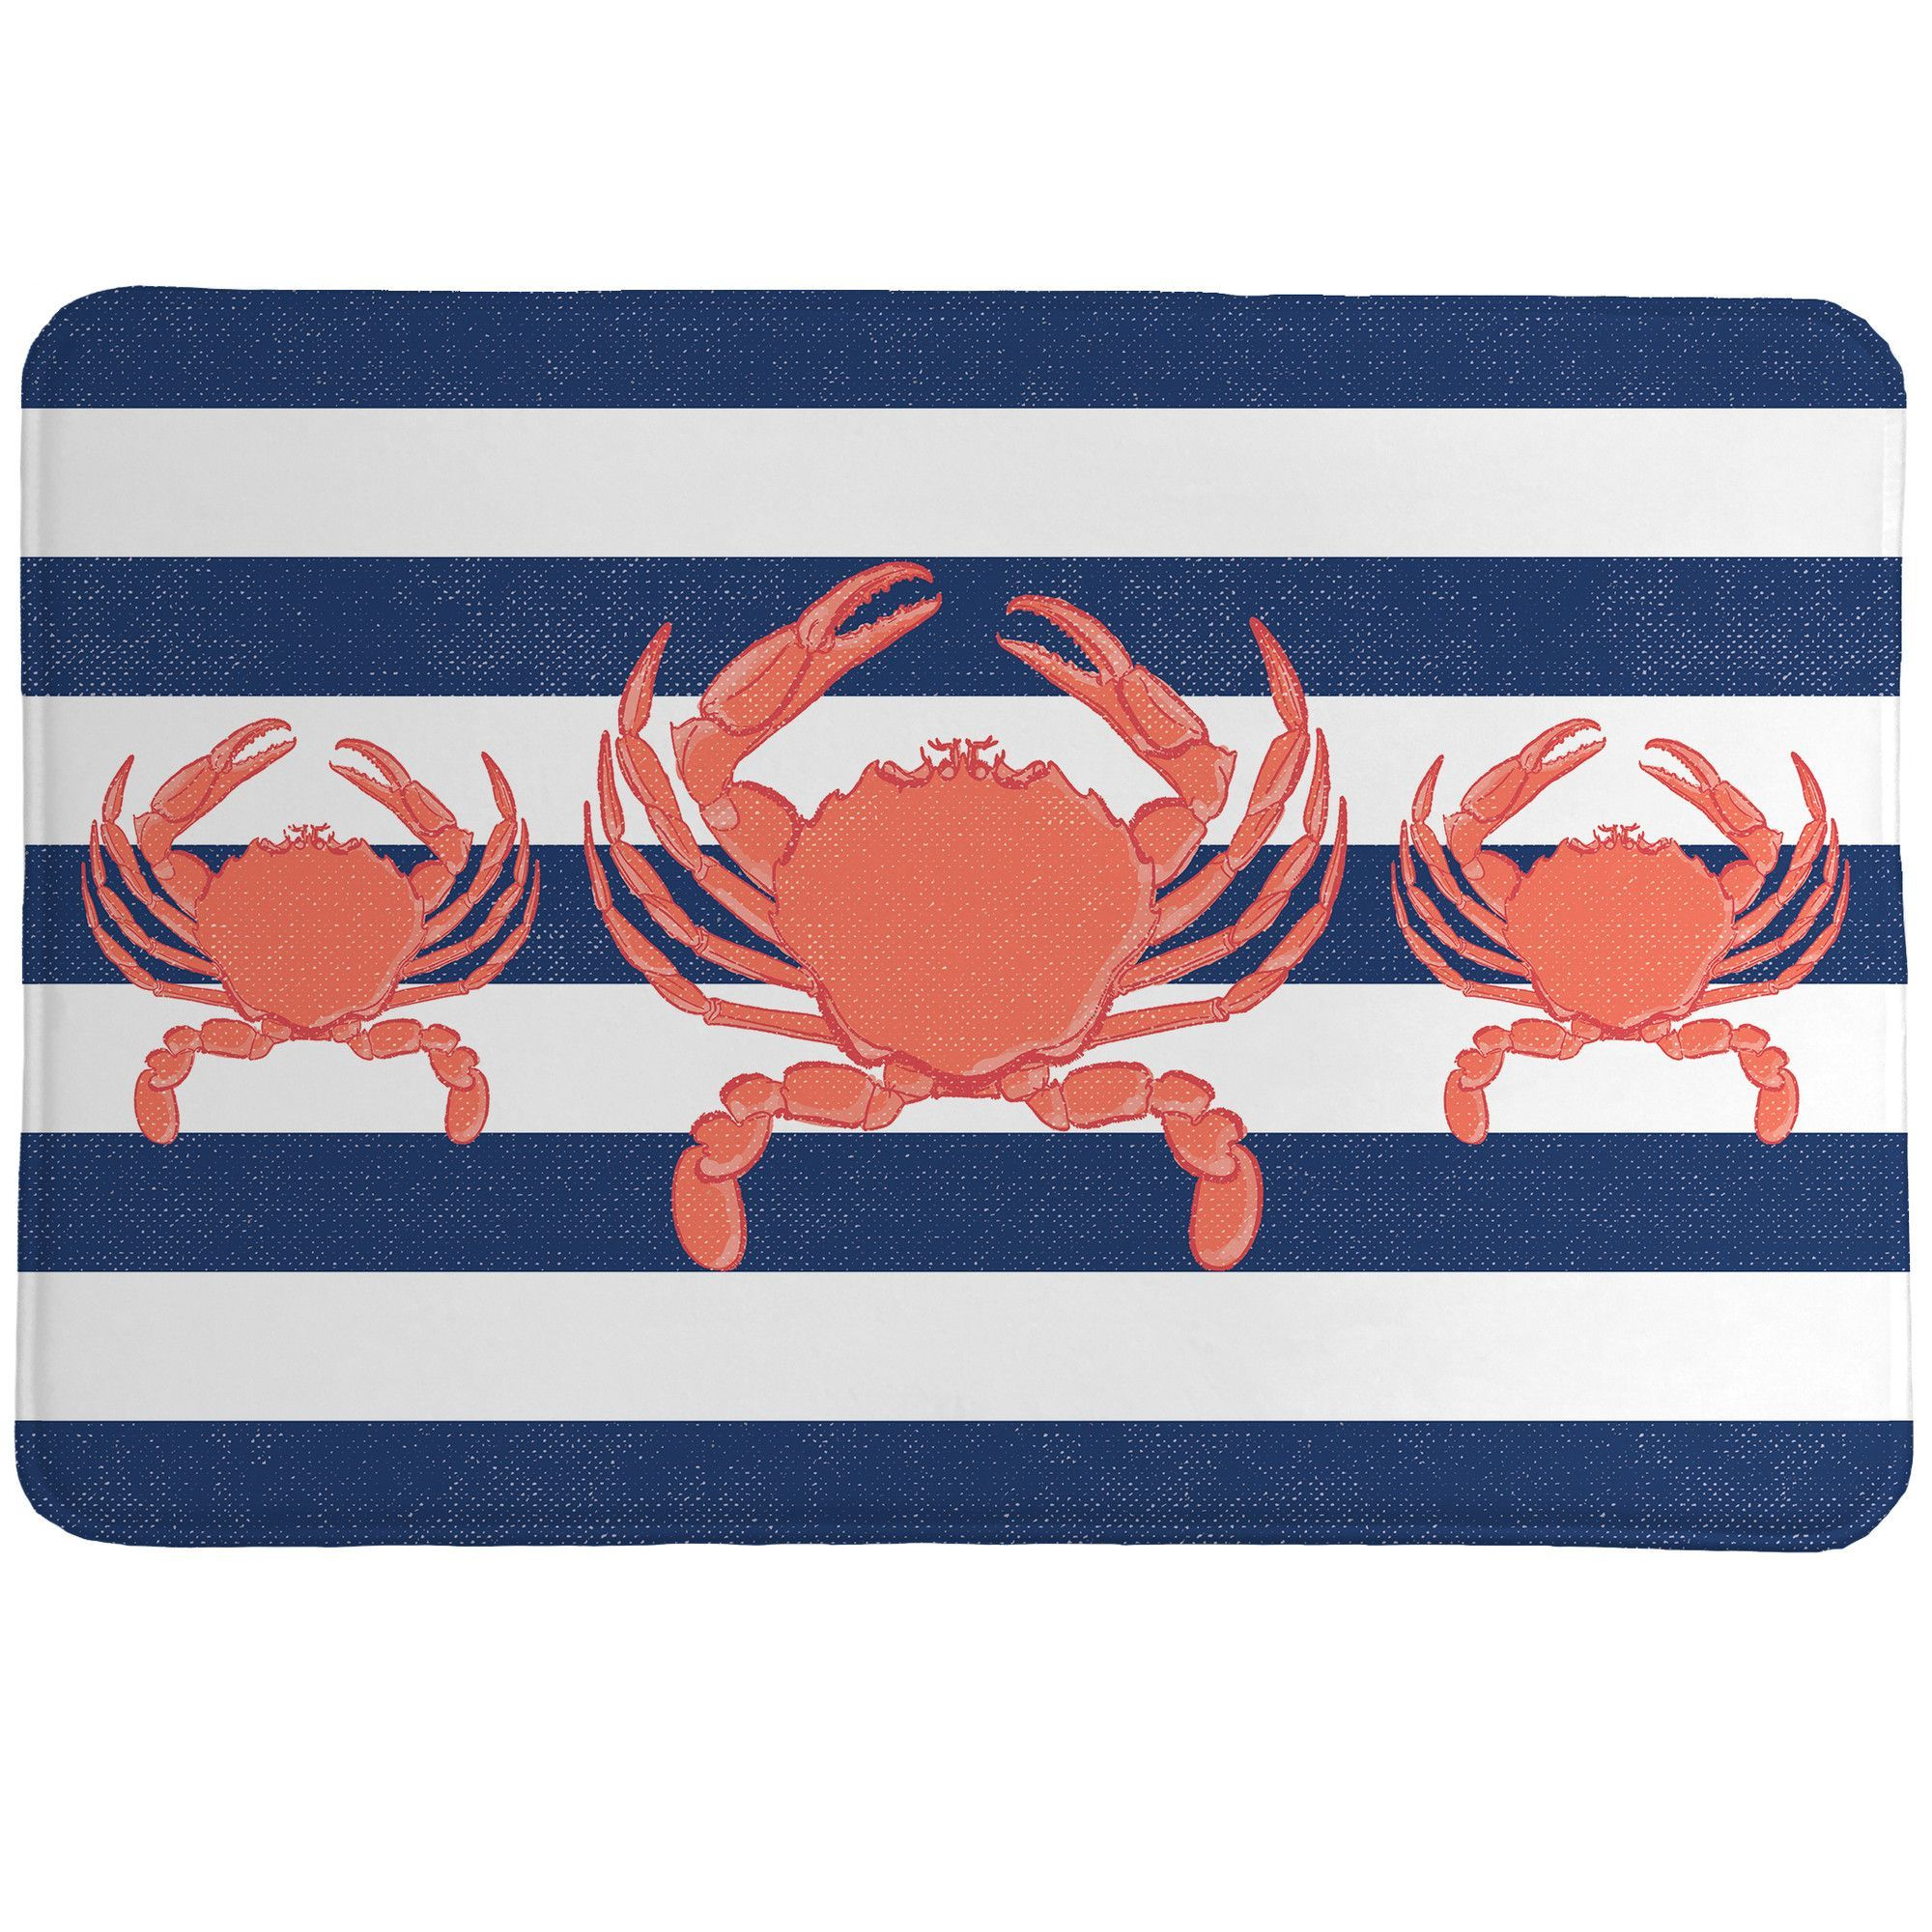 Features:  -All products are digitally printed to create crisp, vibrant colors and images.  -Indoor use only.  -Skid-resistant backing.  Shape: -Rectangle.  Theme: -Coastal.  Color: -Blue and coral. D